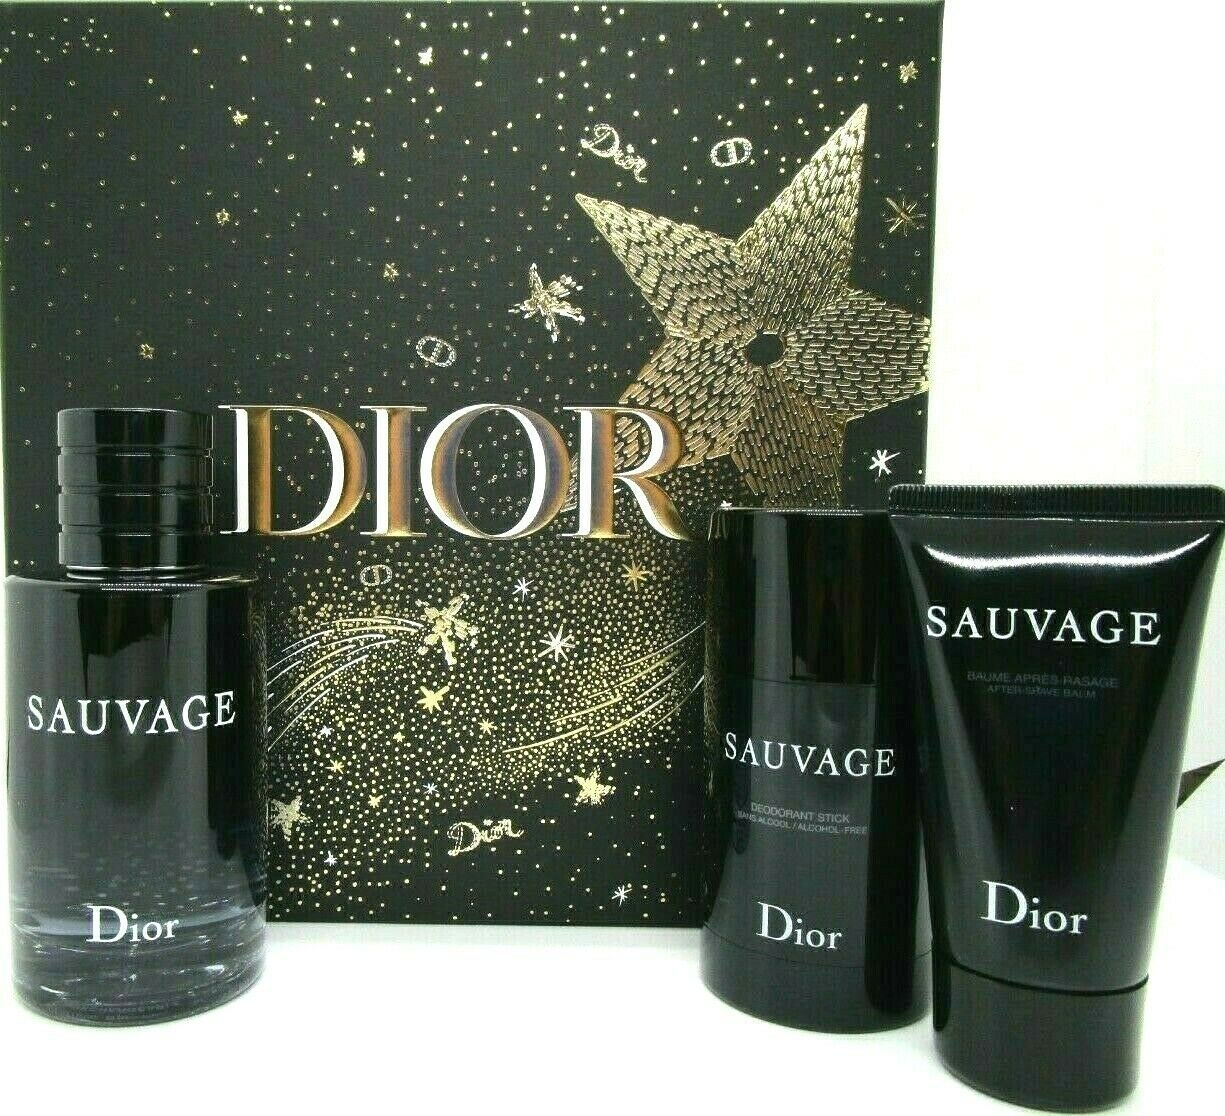 Aaachristian dior sauvage 3 pcs cologne set